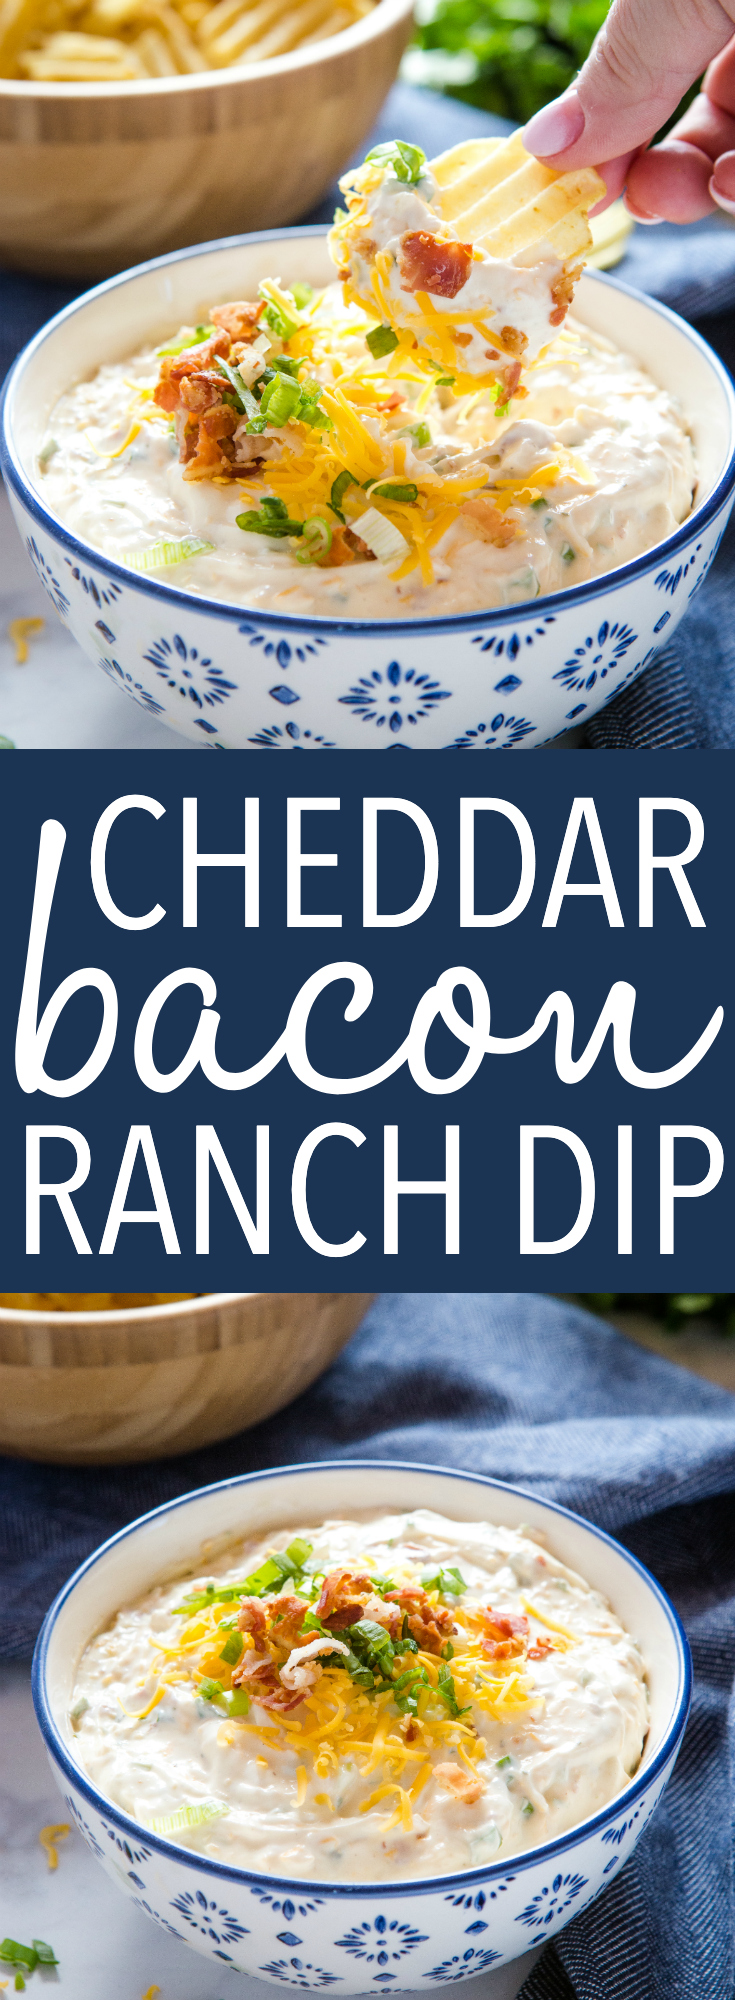 This Cheddar Bacon Ranch Dip is the perfect dip for veggies and chips - it's savoury, creamy and packed with cheese and bacon! Recipe from thebusybaker.ca! #dip #gameday #chips #veggies #ranch #bacon #cheese #cheddar #creamy #appetizer #snack #football #summer via @busybakerblog